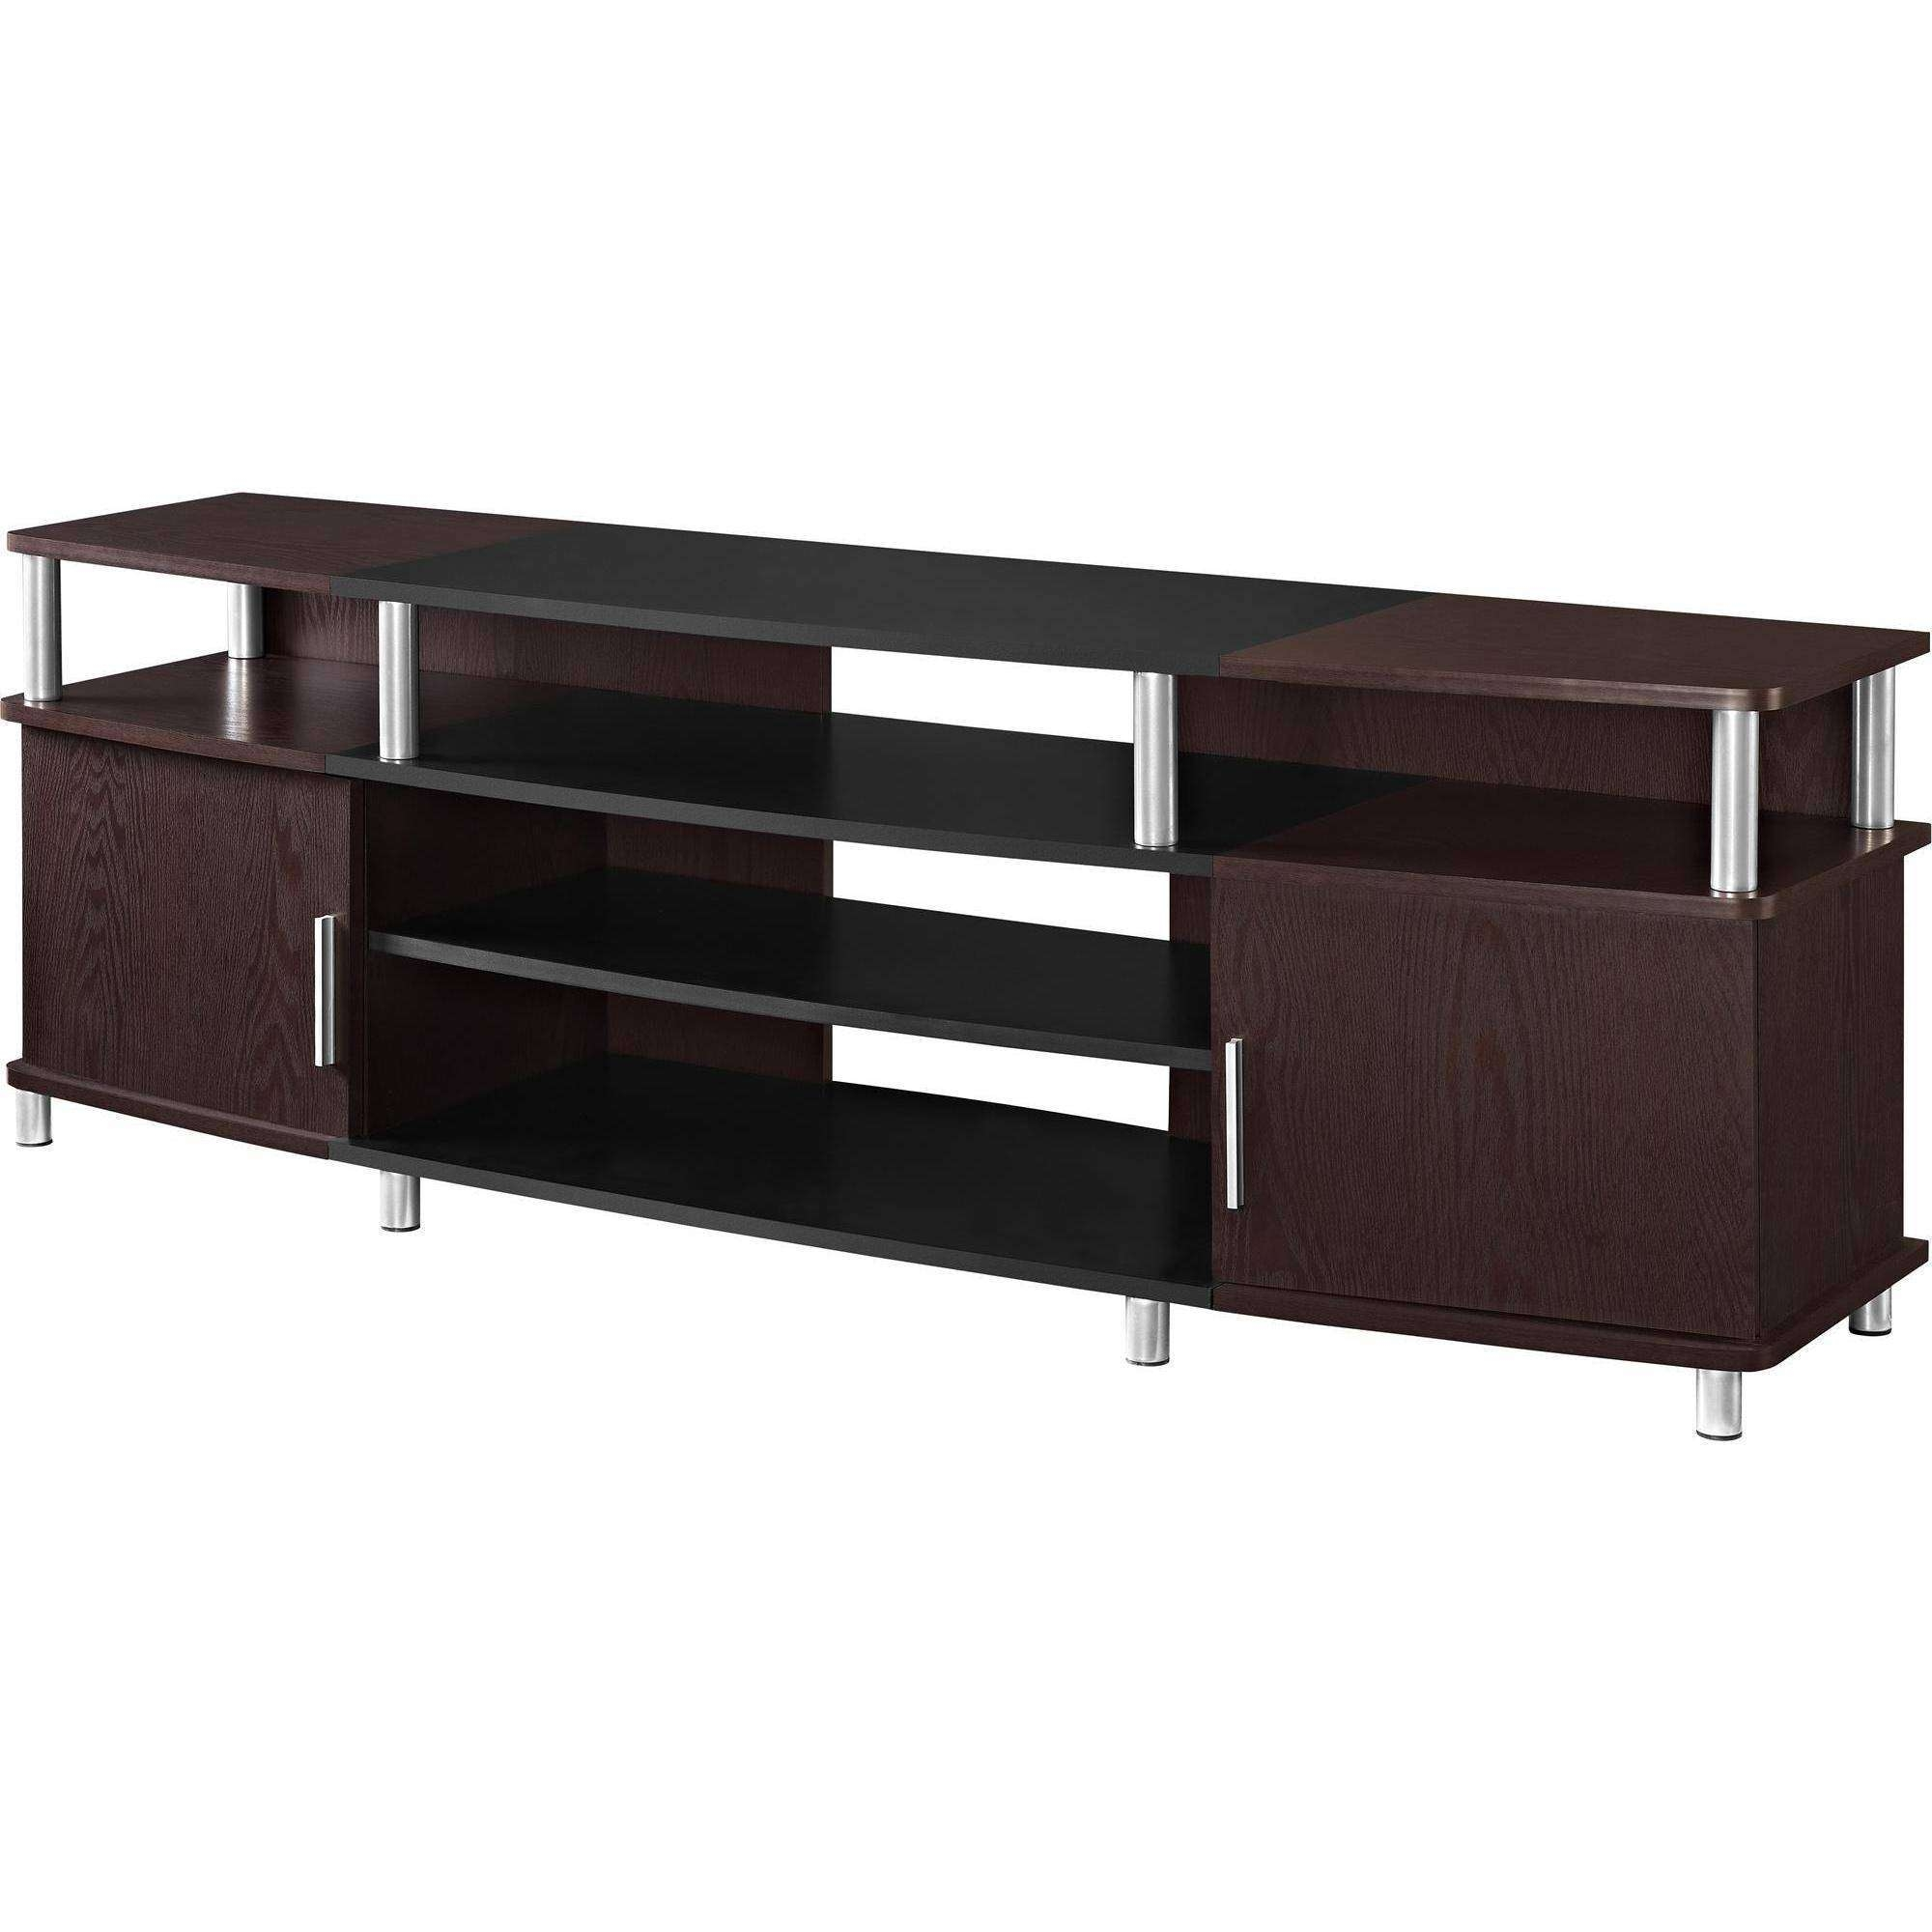 Furnitures Tv Stand For Inch Flat Screen Ameriwood Home Carson Tvs Throughout Tv Stands For 70 Flat Screen (View 5 of 15)